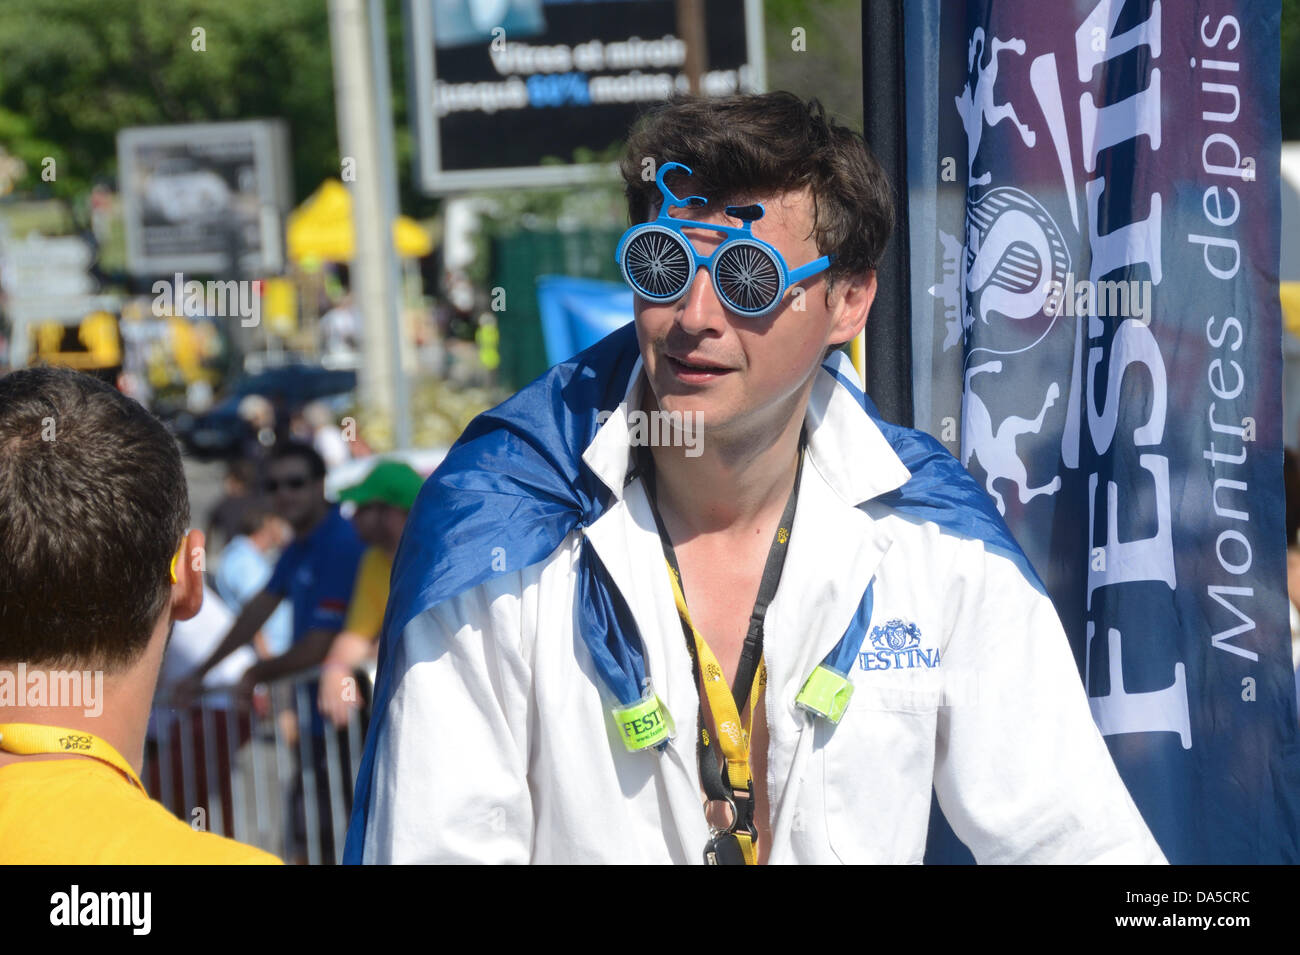 Spectator Wearing Funny Bicycle Shaped Glasses At The Tour De France